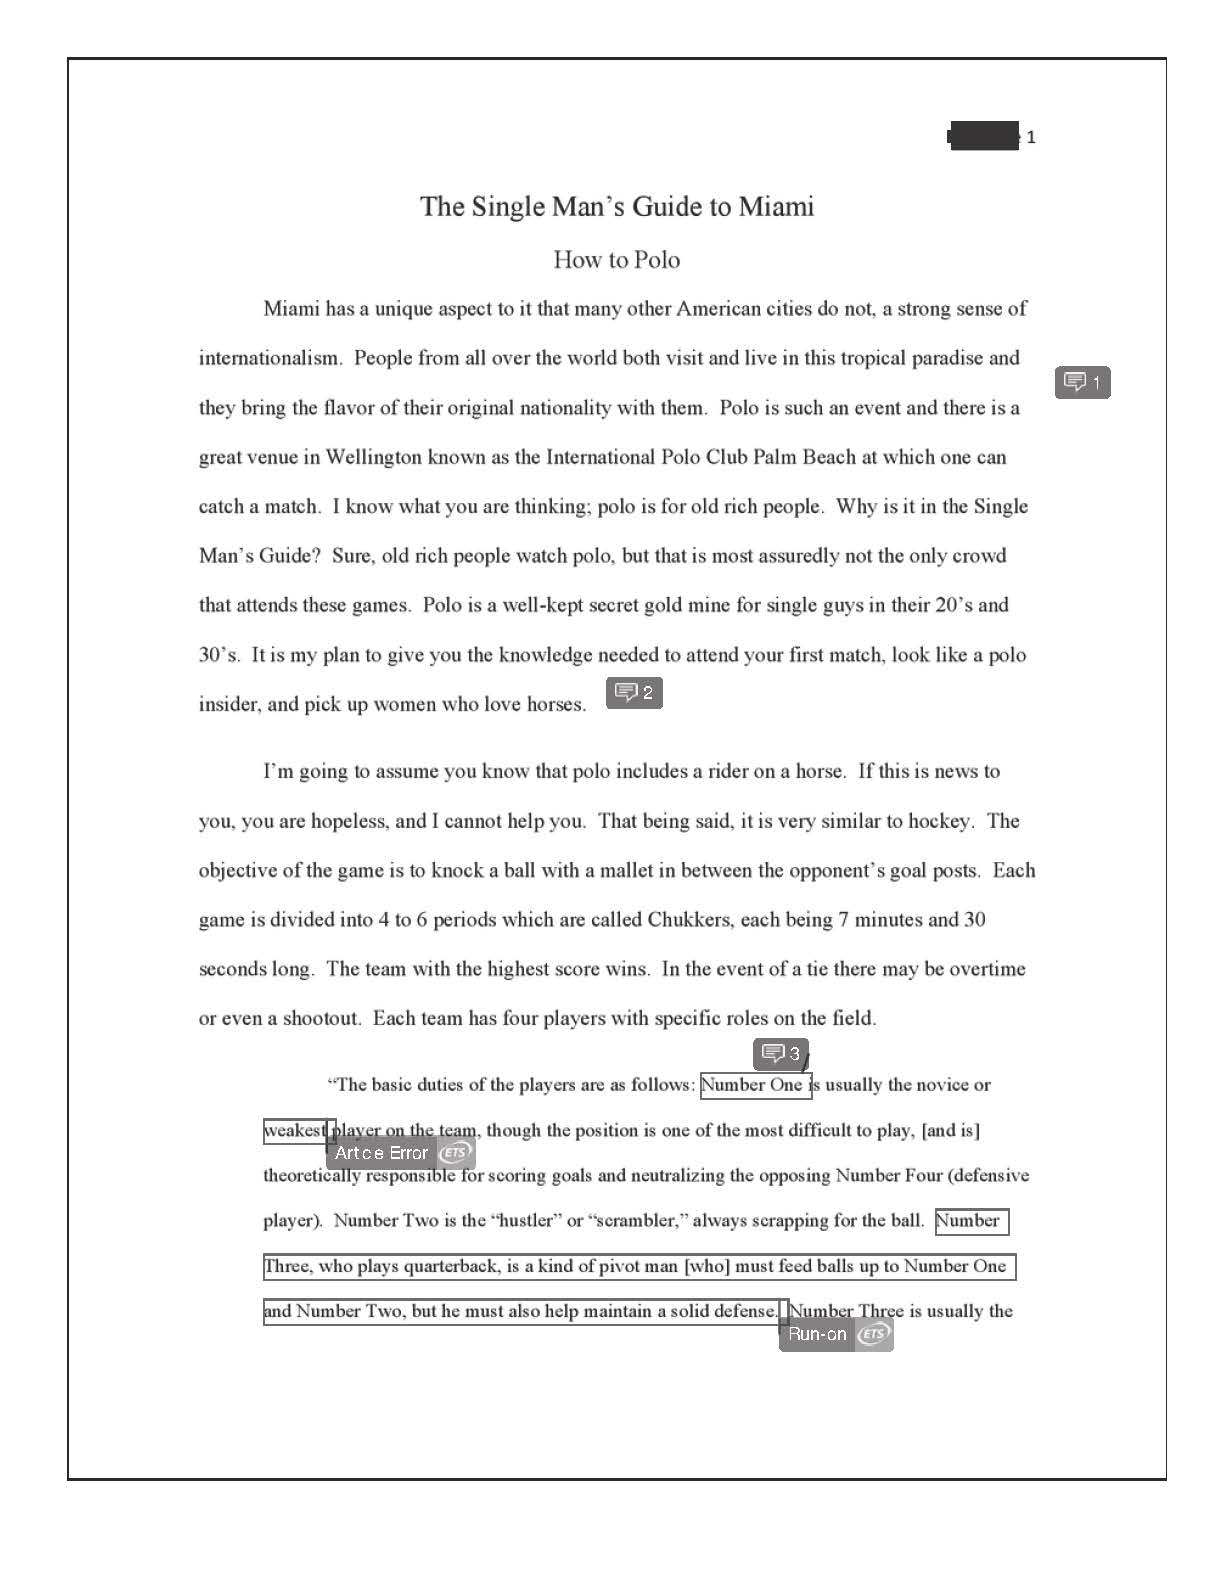 009 Essay Example Informative Format Final How To Polo Redacted Page 2 Unbelievable Pdf Speech Informative/explanatory Full